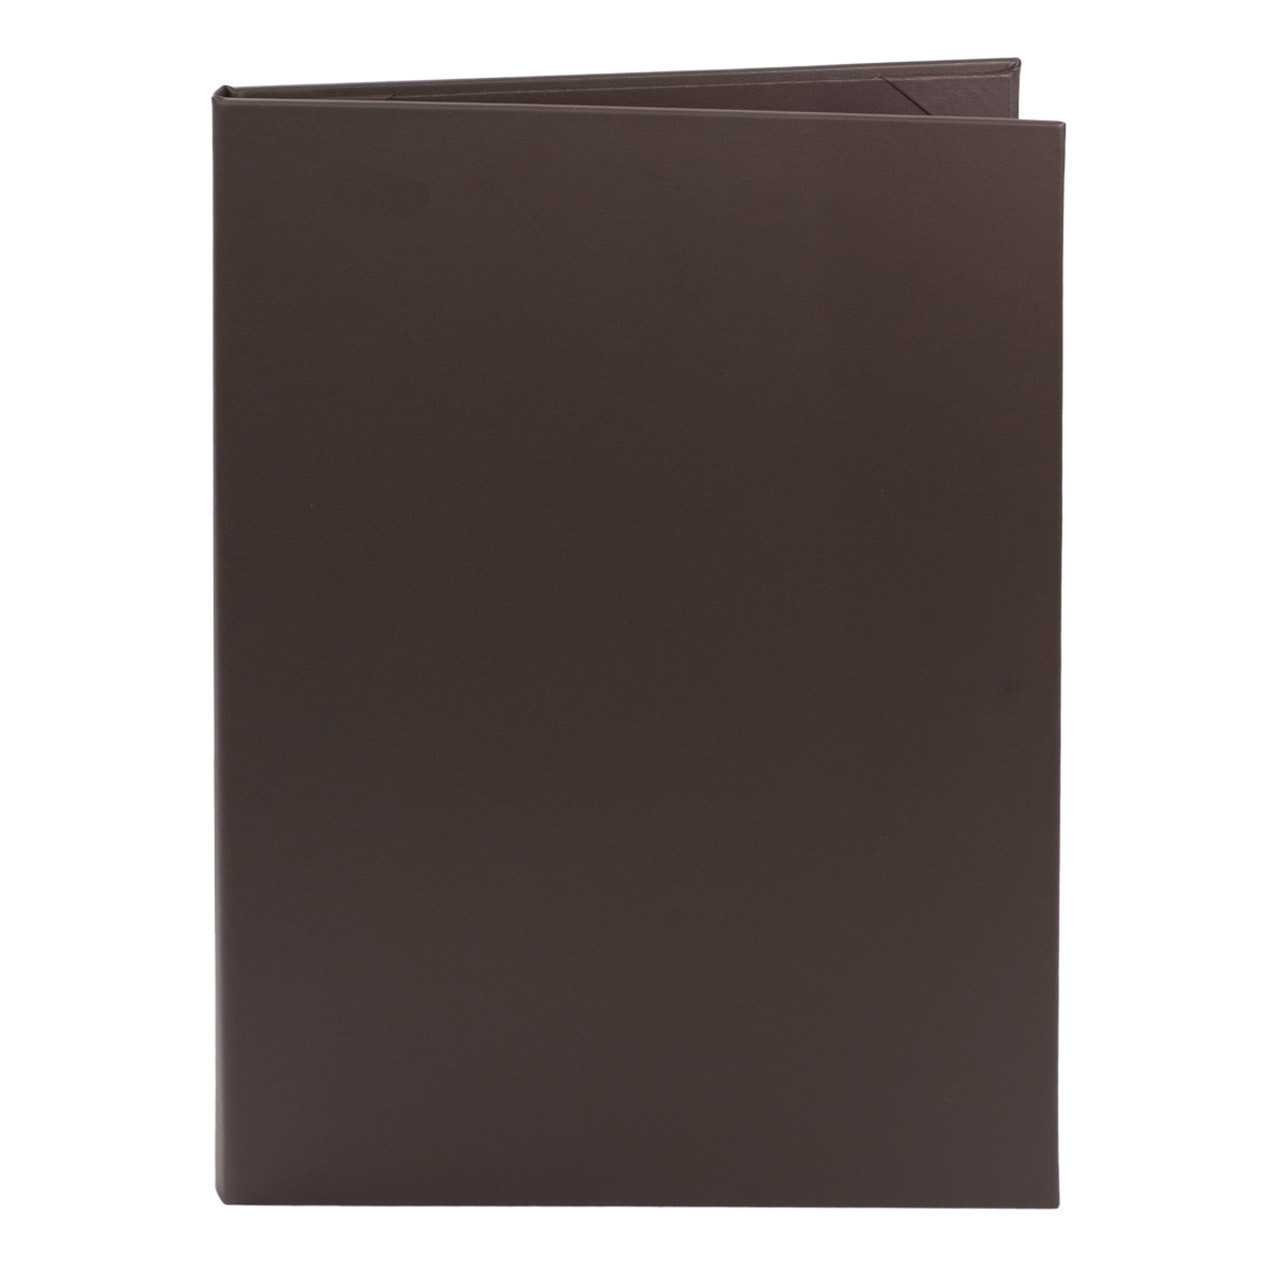 Dark Brown (Chocolate) Menu Cover with 8.5 in. x 14 in. Insert, 2-Panels